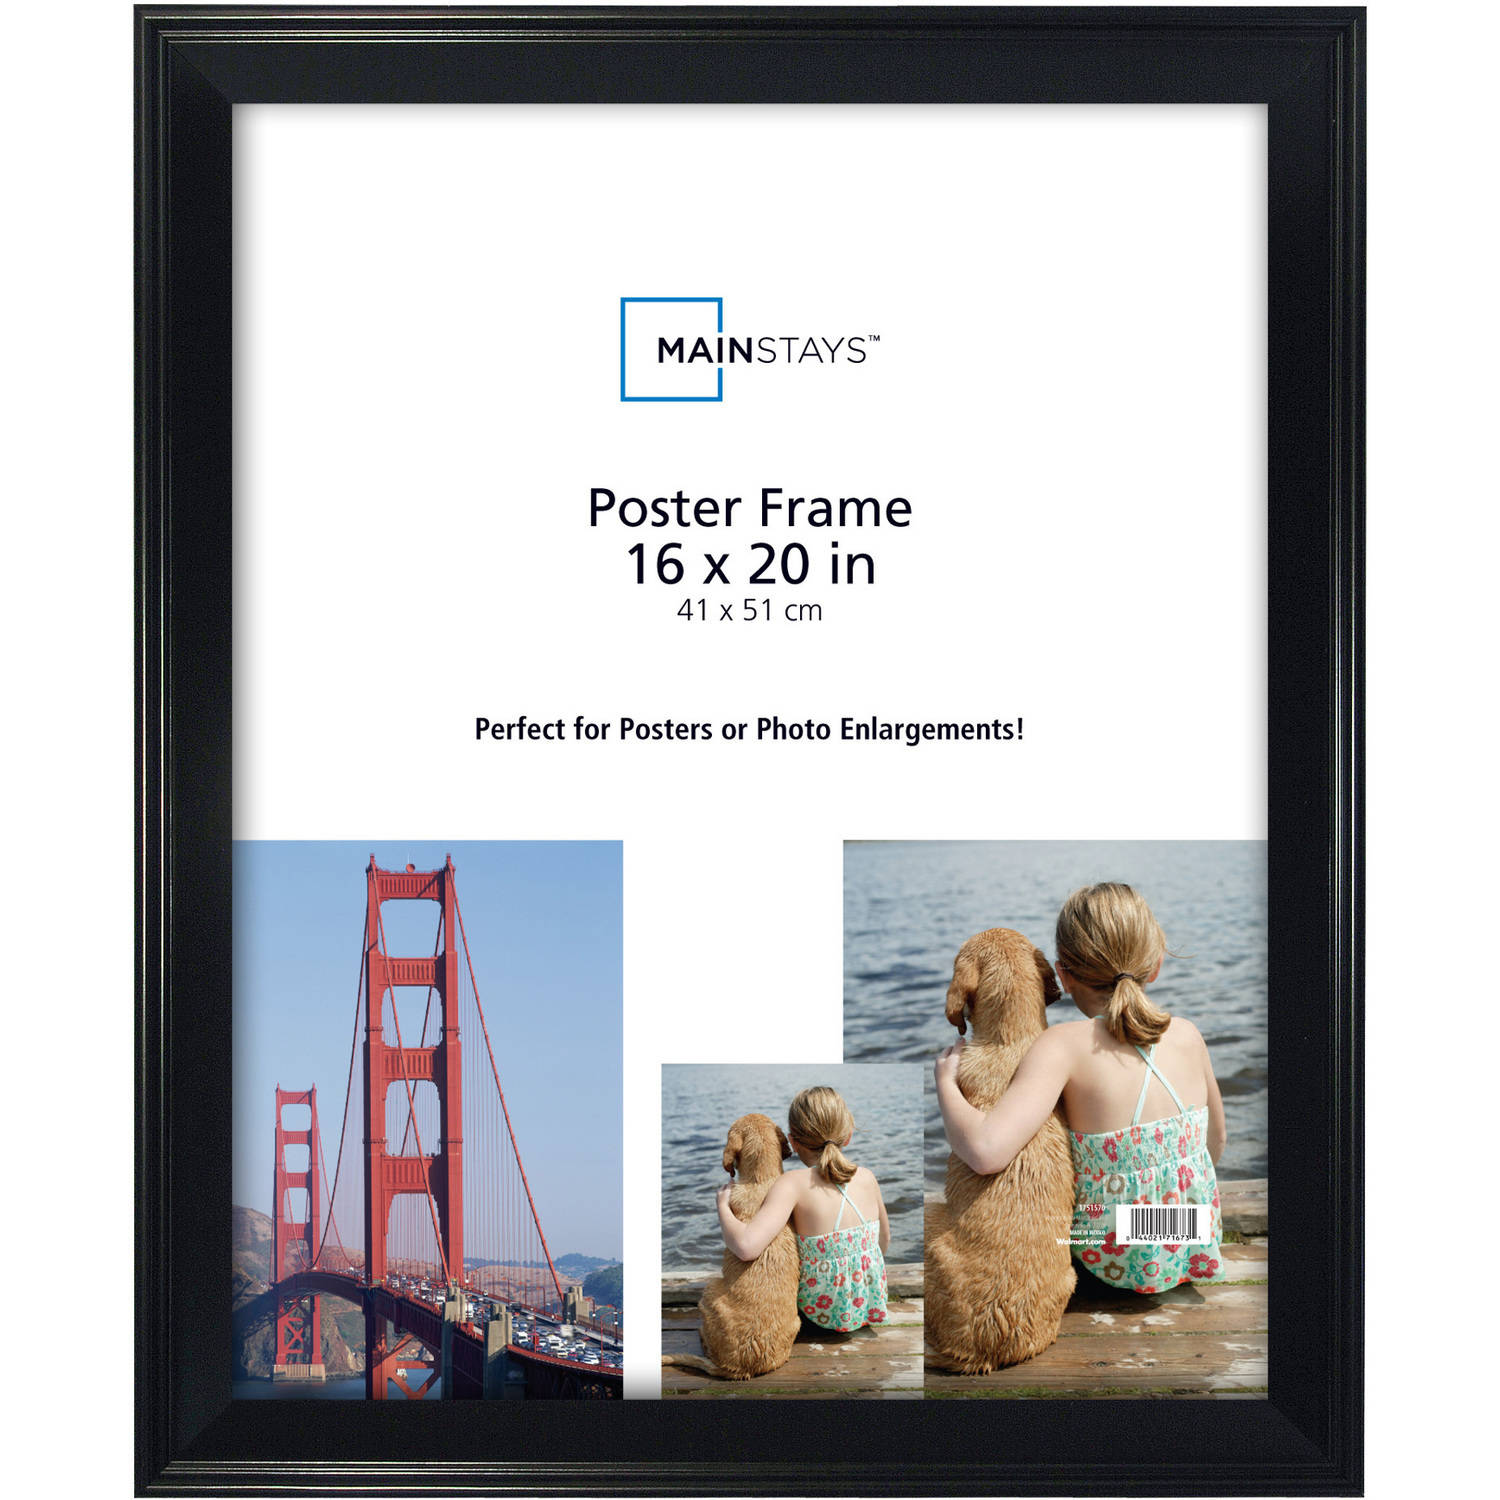 Mainstays 16x20 Casual Poster and Picture Frame, Black - Walmart.com